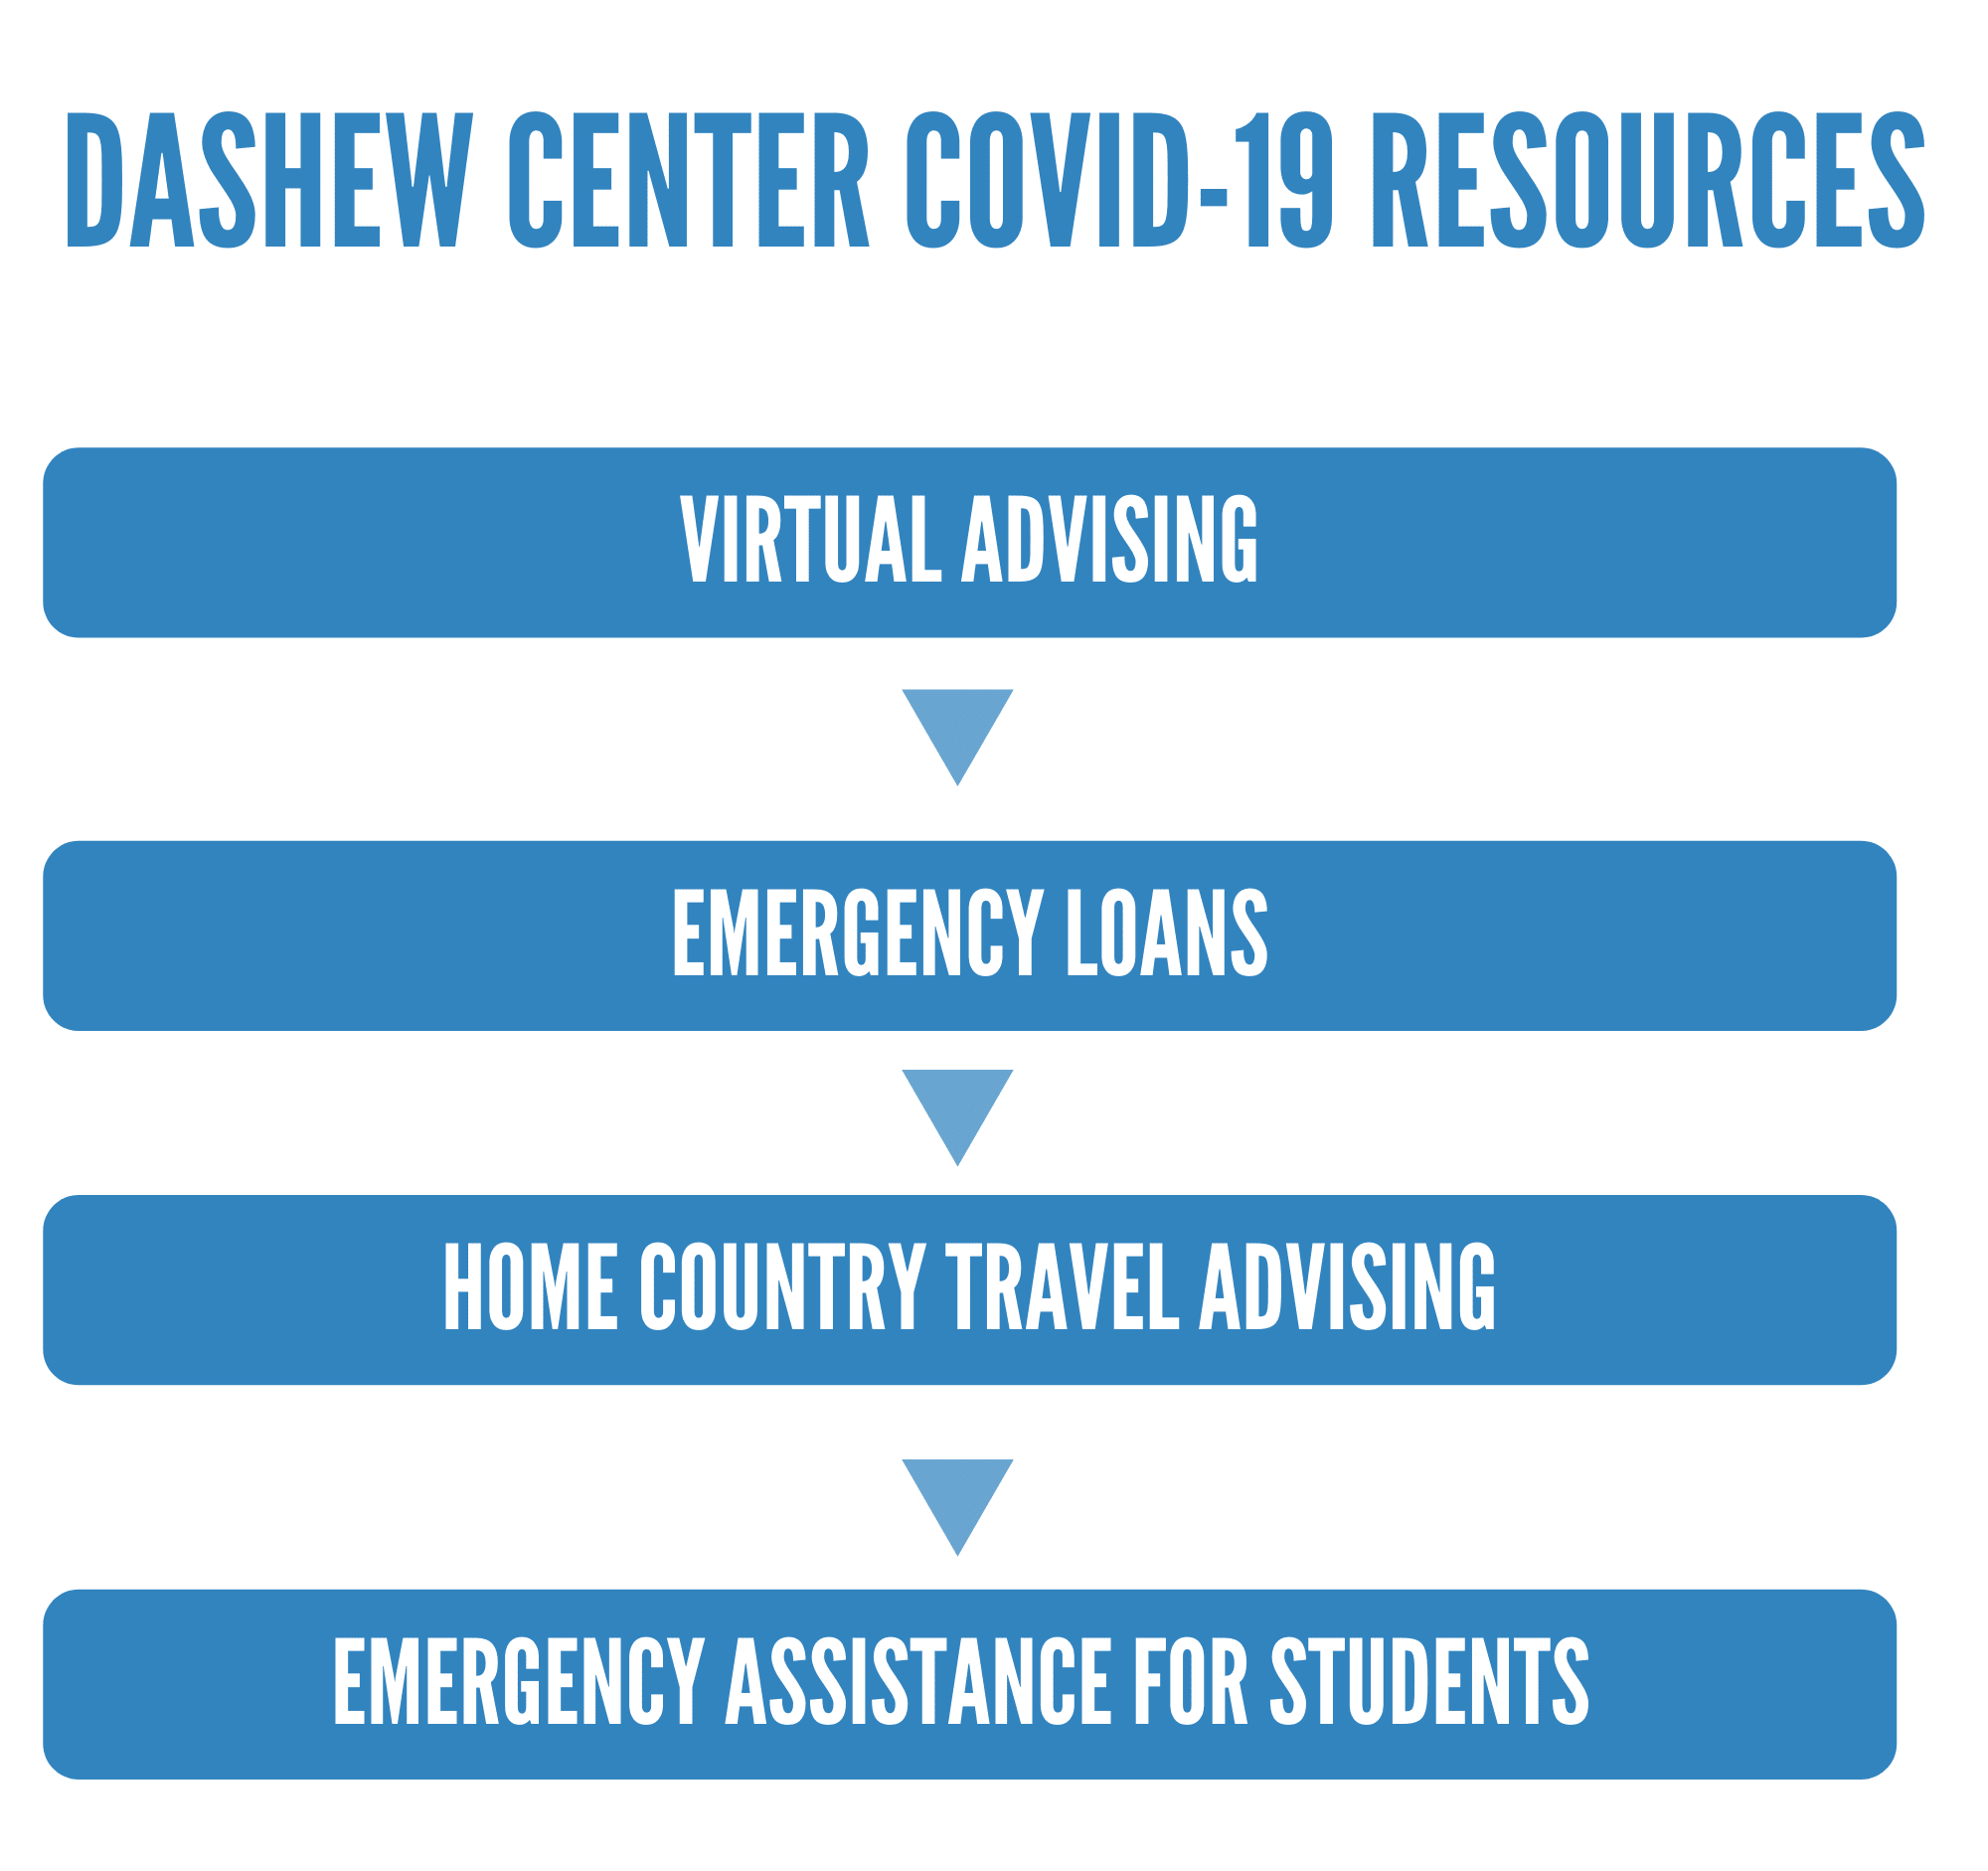 dashew center covid-19 resources